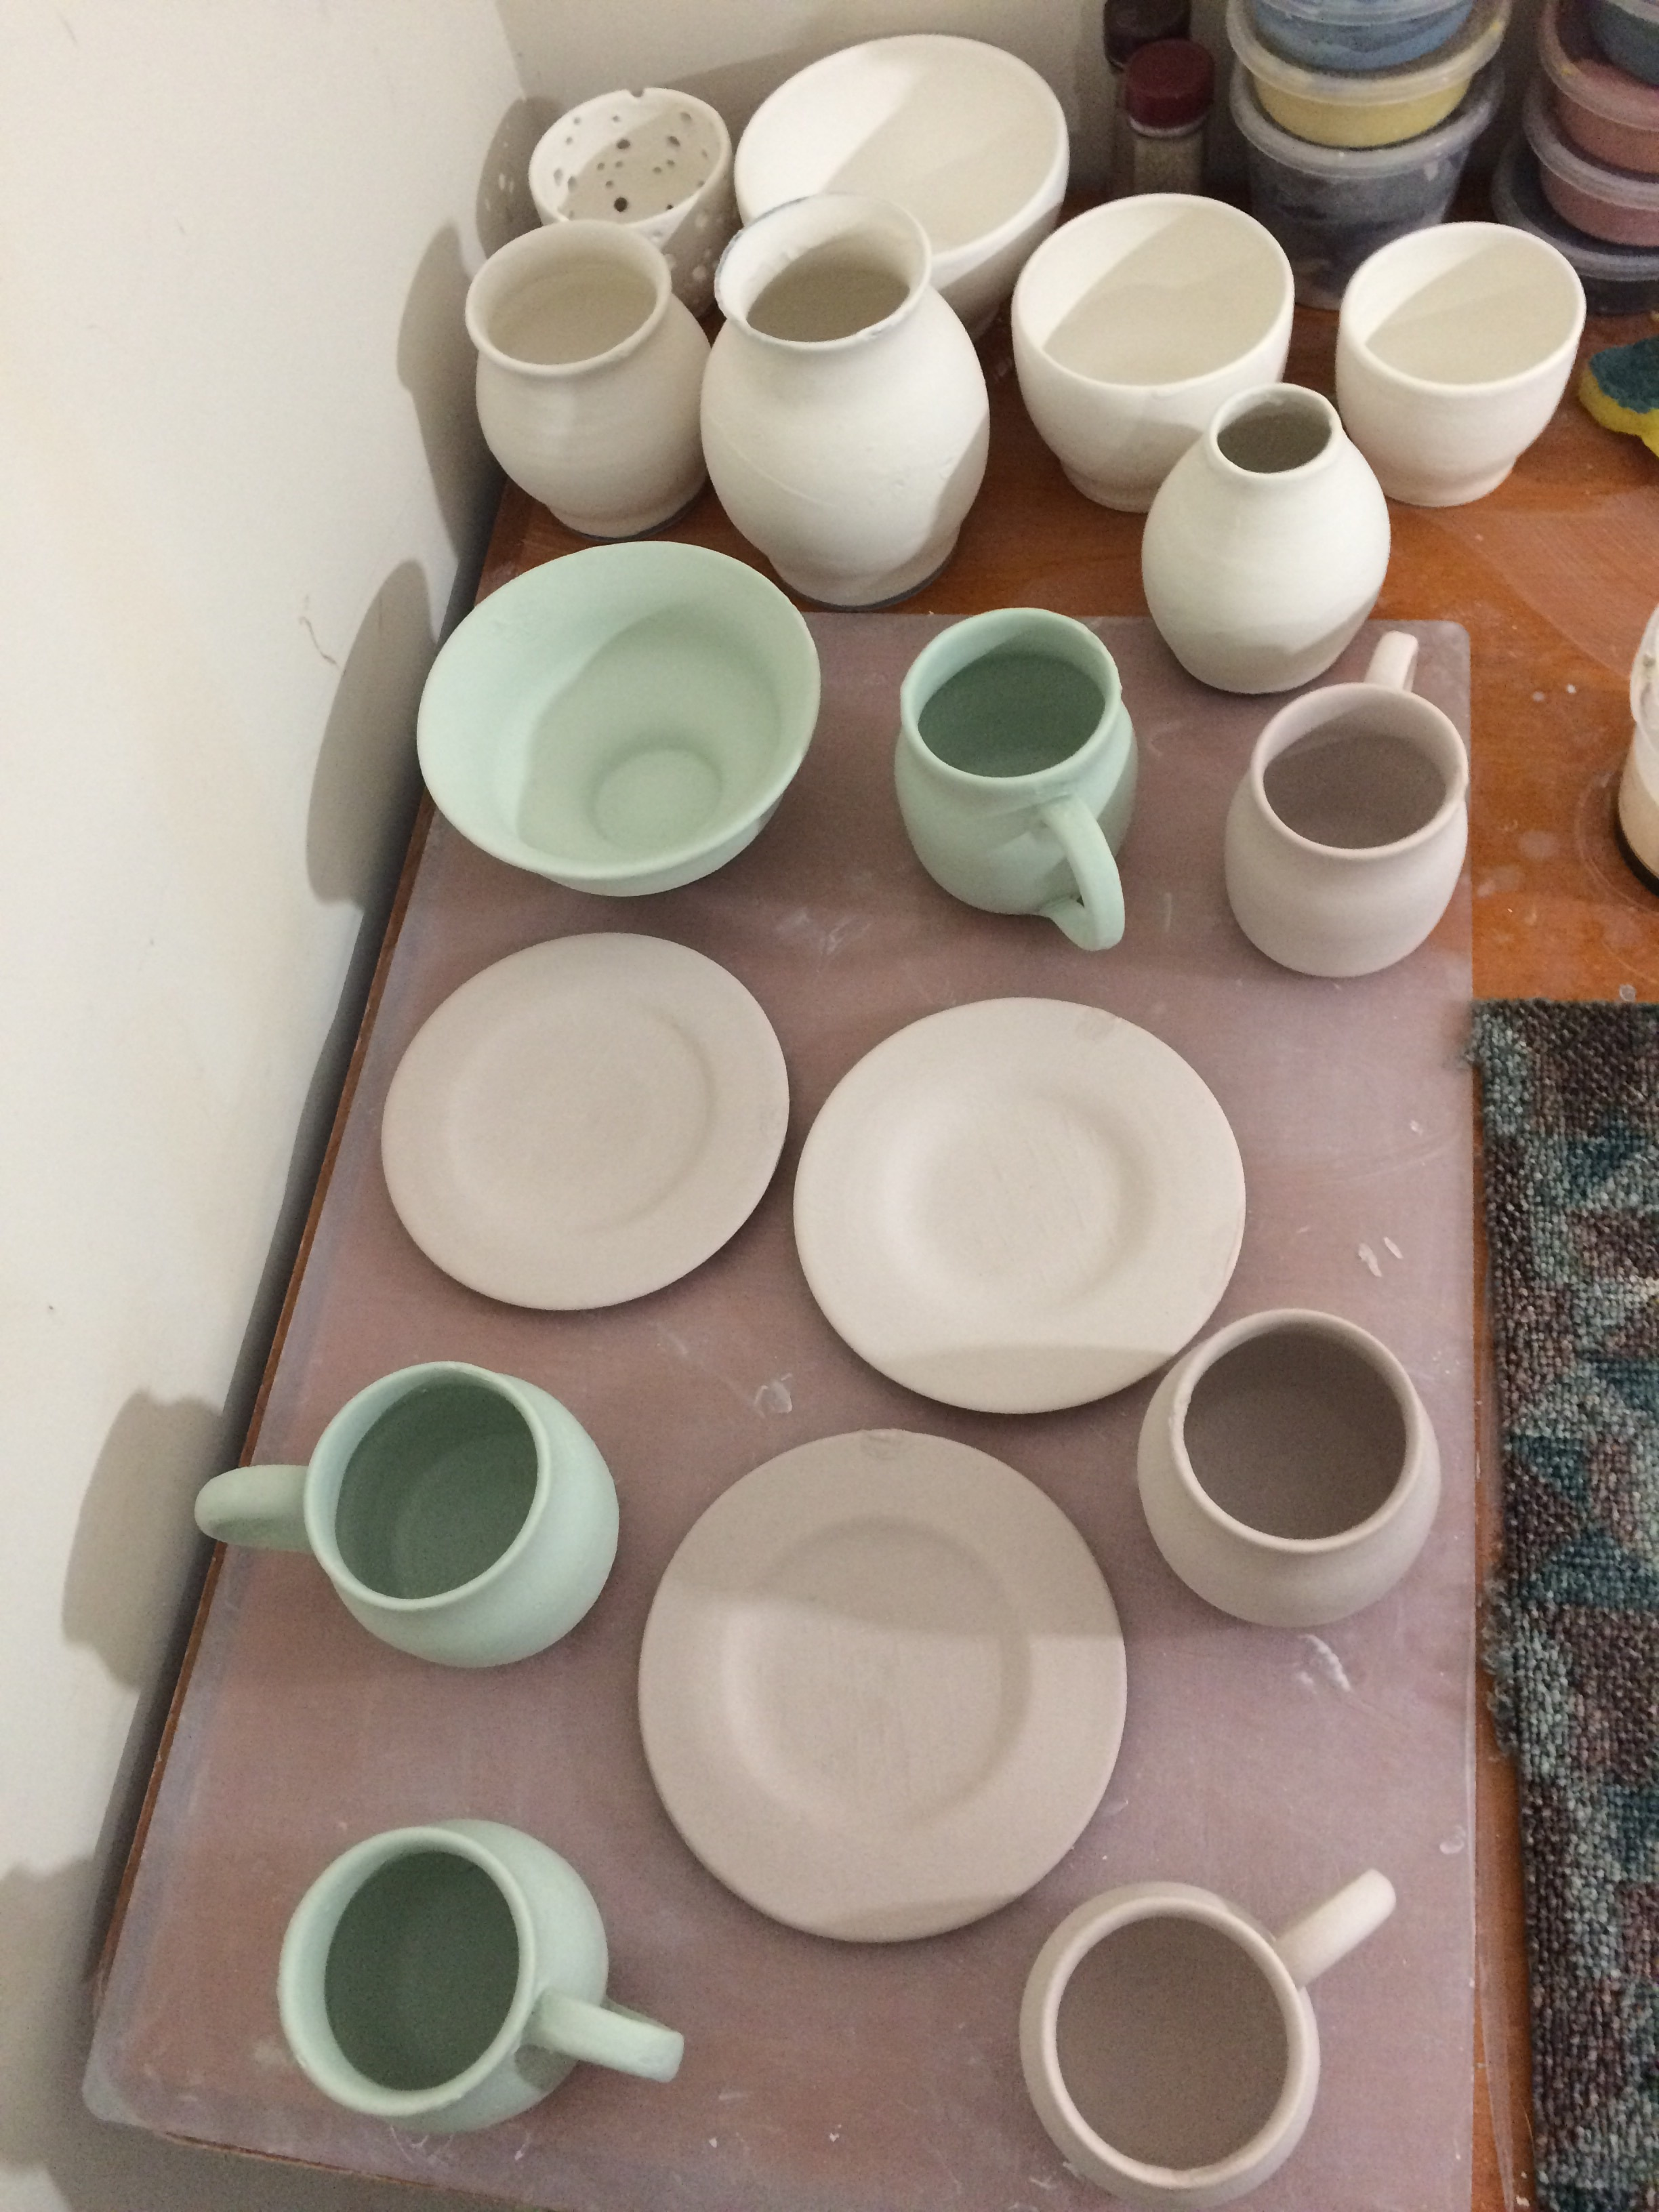 The glaze sets on the pots in certain colours but this does not indicate what colour they will be when they are fired!